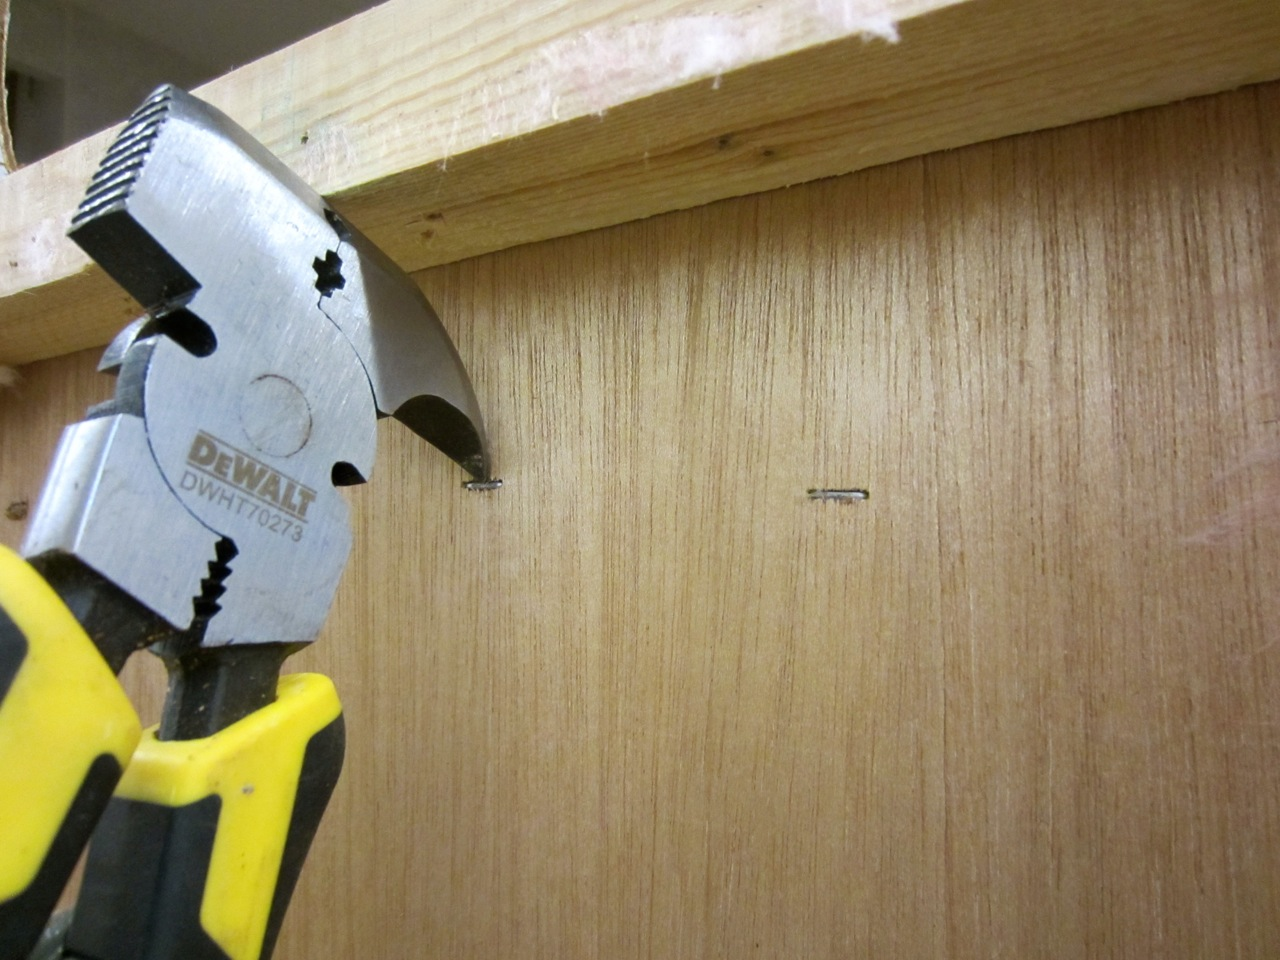 We had to remove all the staples that keep the cabinets attached to the walls. Go get yourself a pair of fencing pliers!